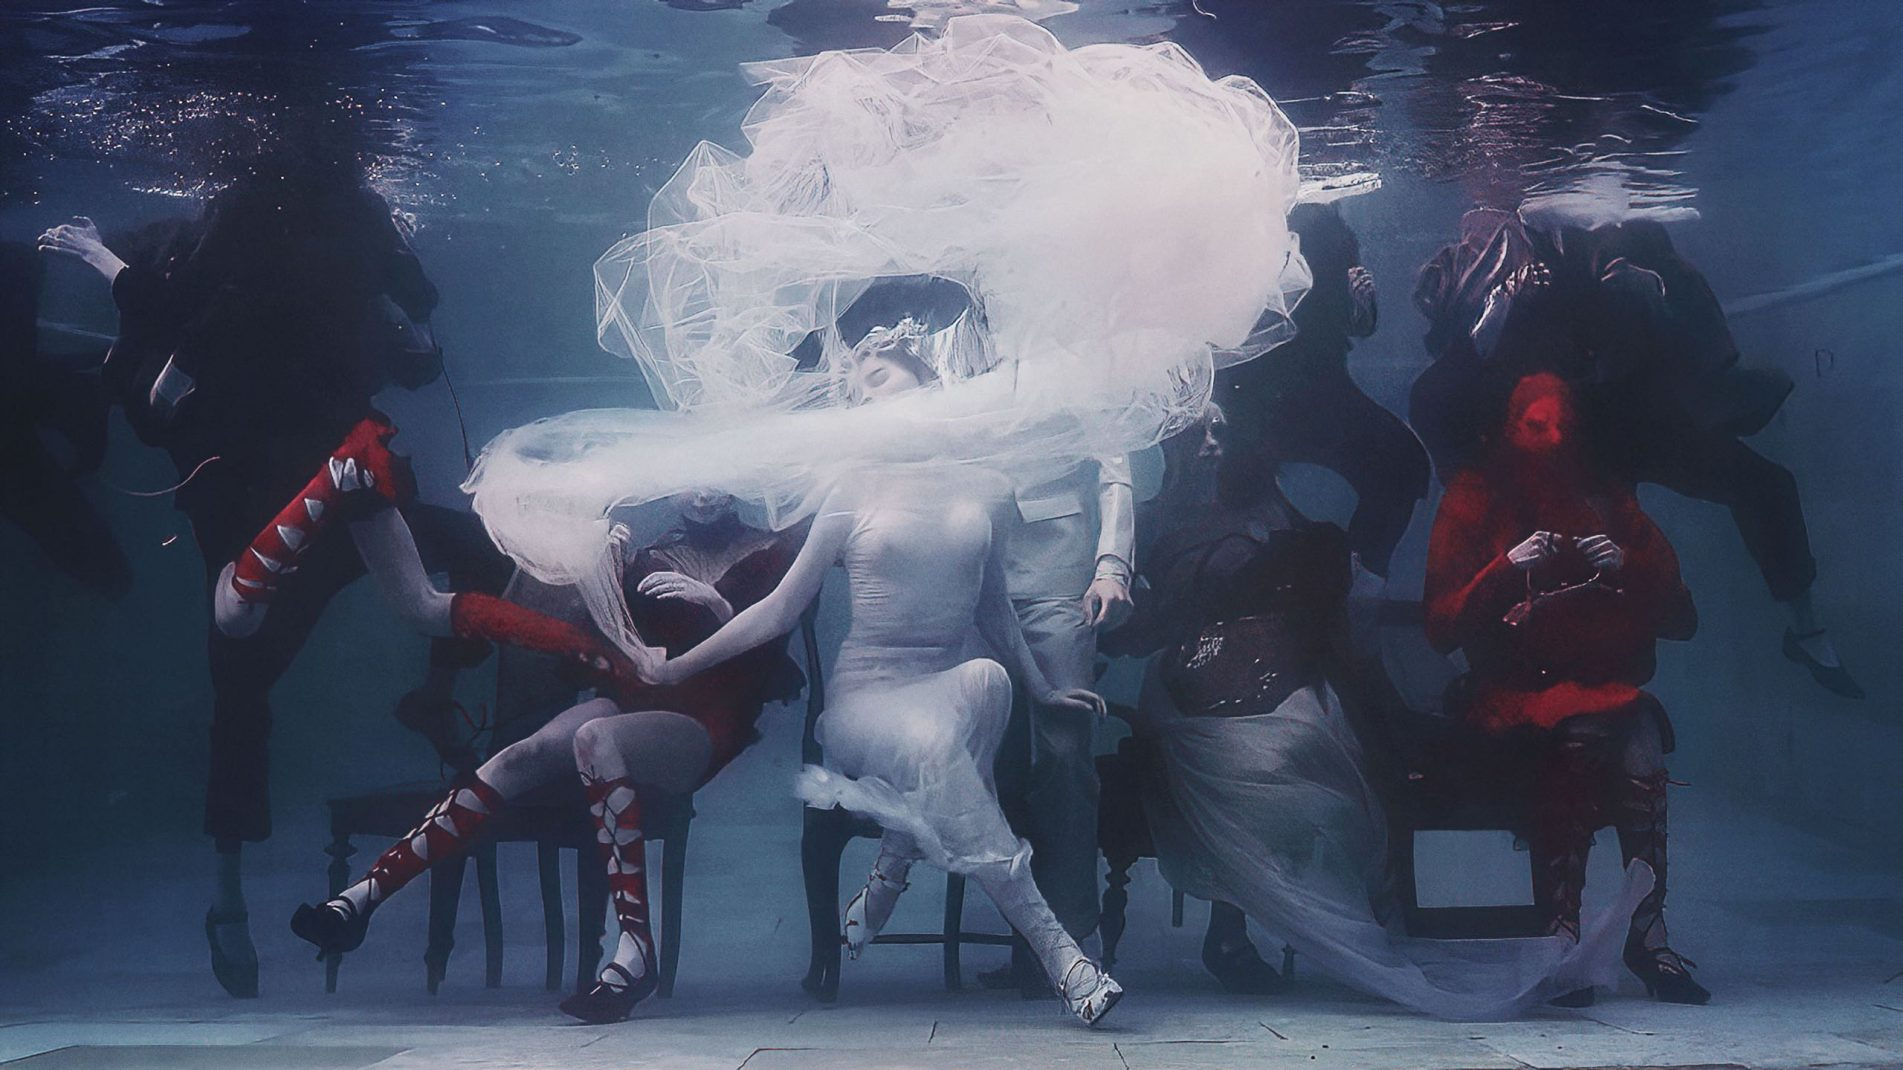 Courtesy of Maison Margiela. Nick Knight for SHOWstudio